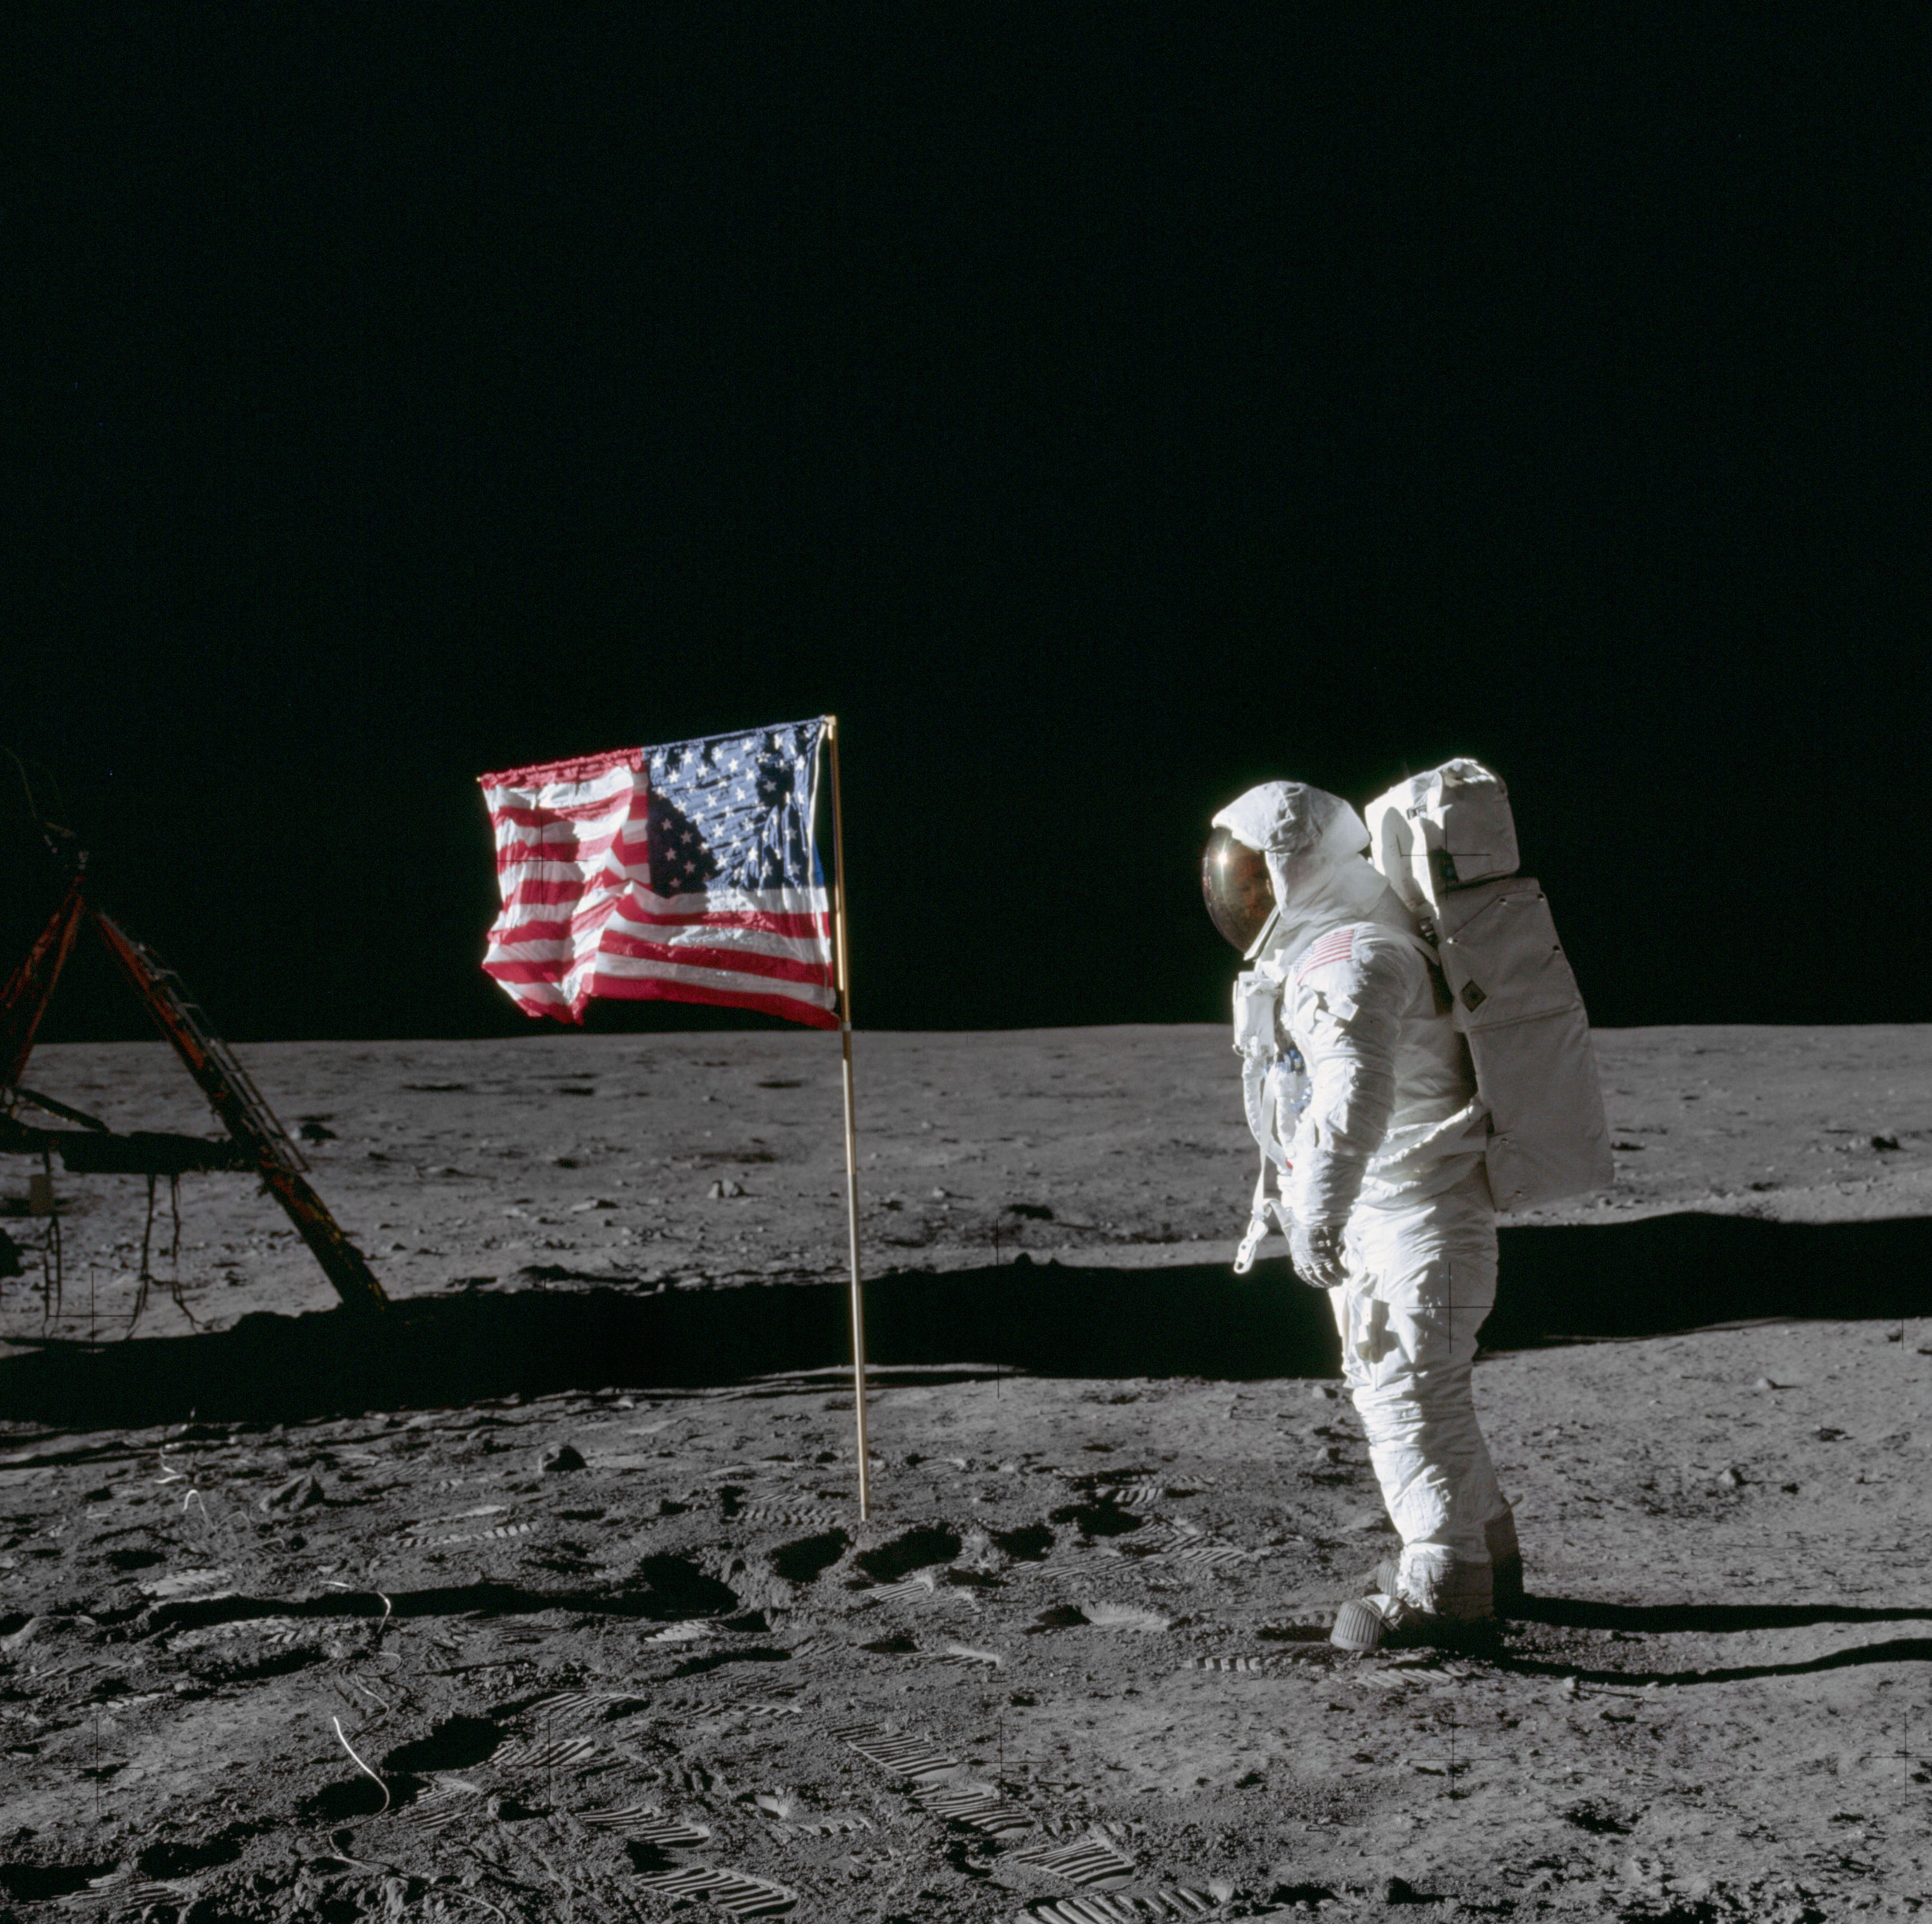 America landed a man on the moon. Climate change calls for the same bold, can-do spirit.